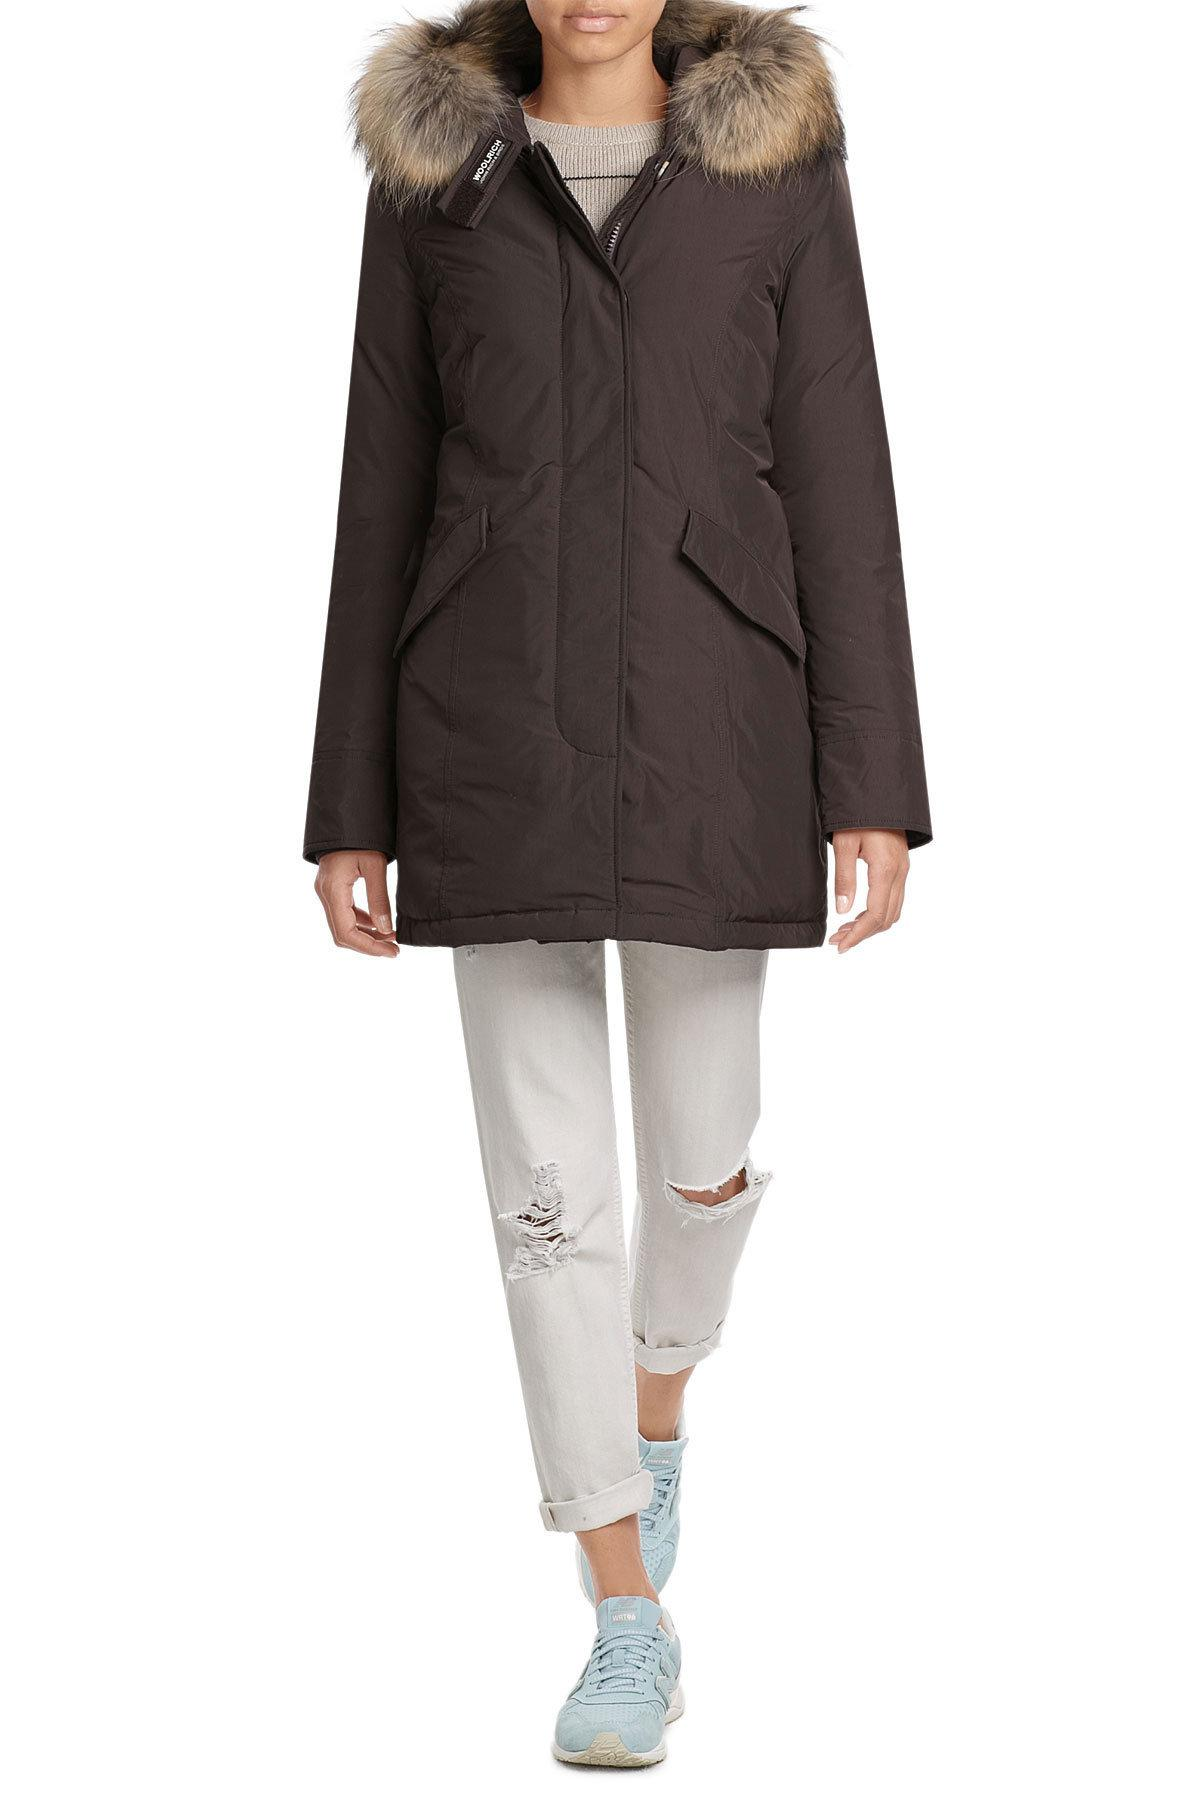 woolrich luxury arctic down parka with fur trimmed hood in black lyst. Black Bedroom Furniture Sets. Home Design Ideas